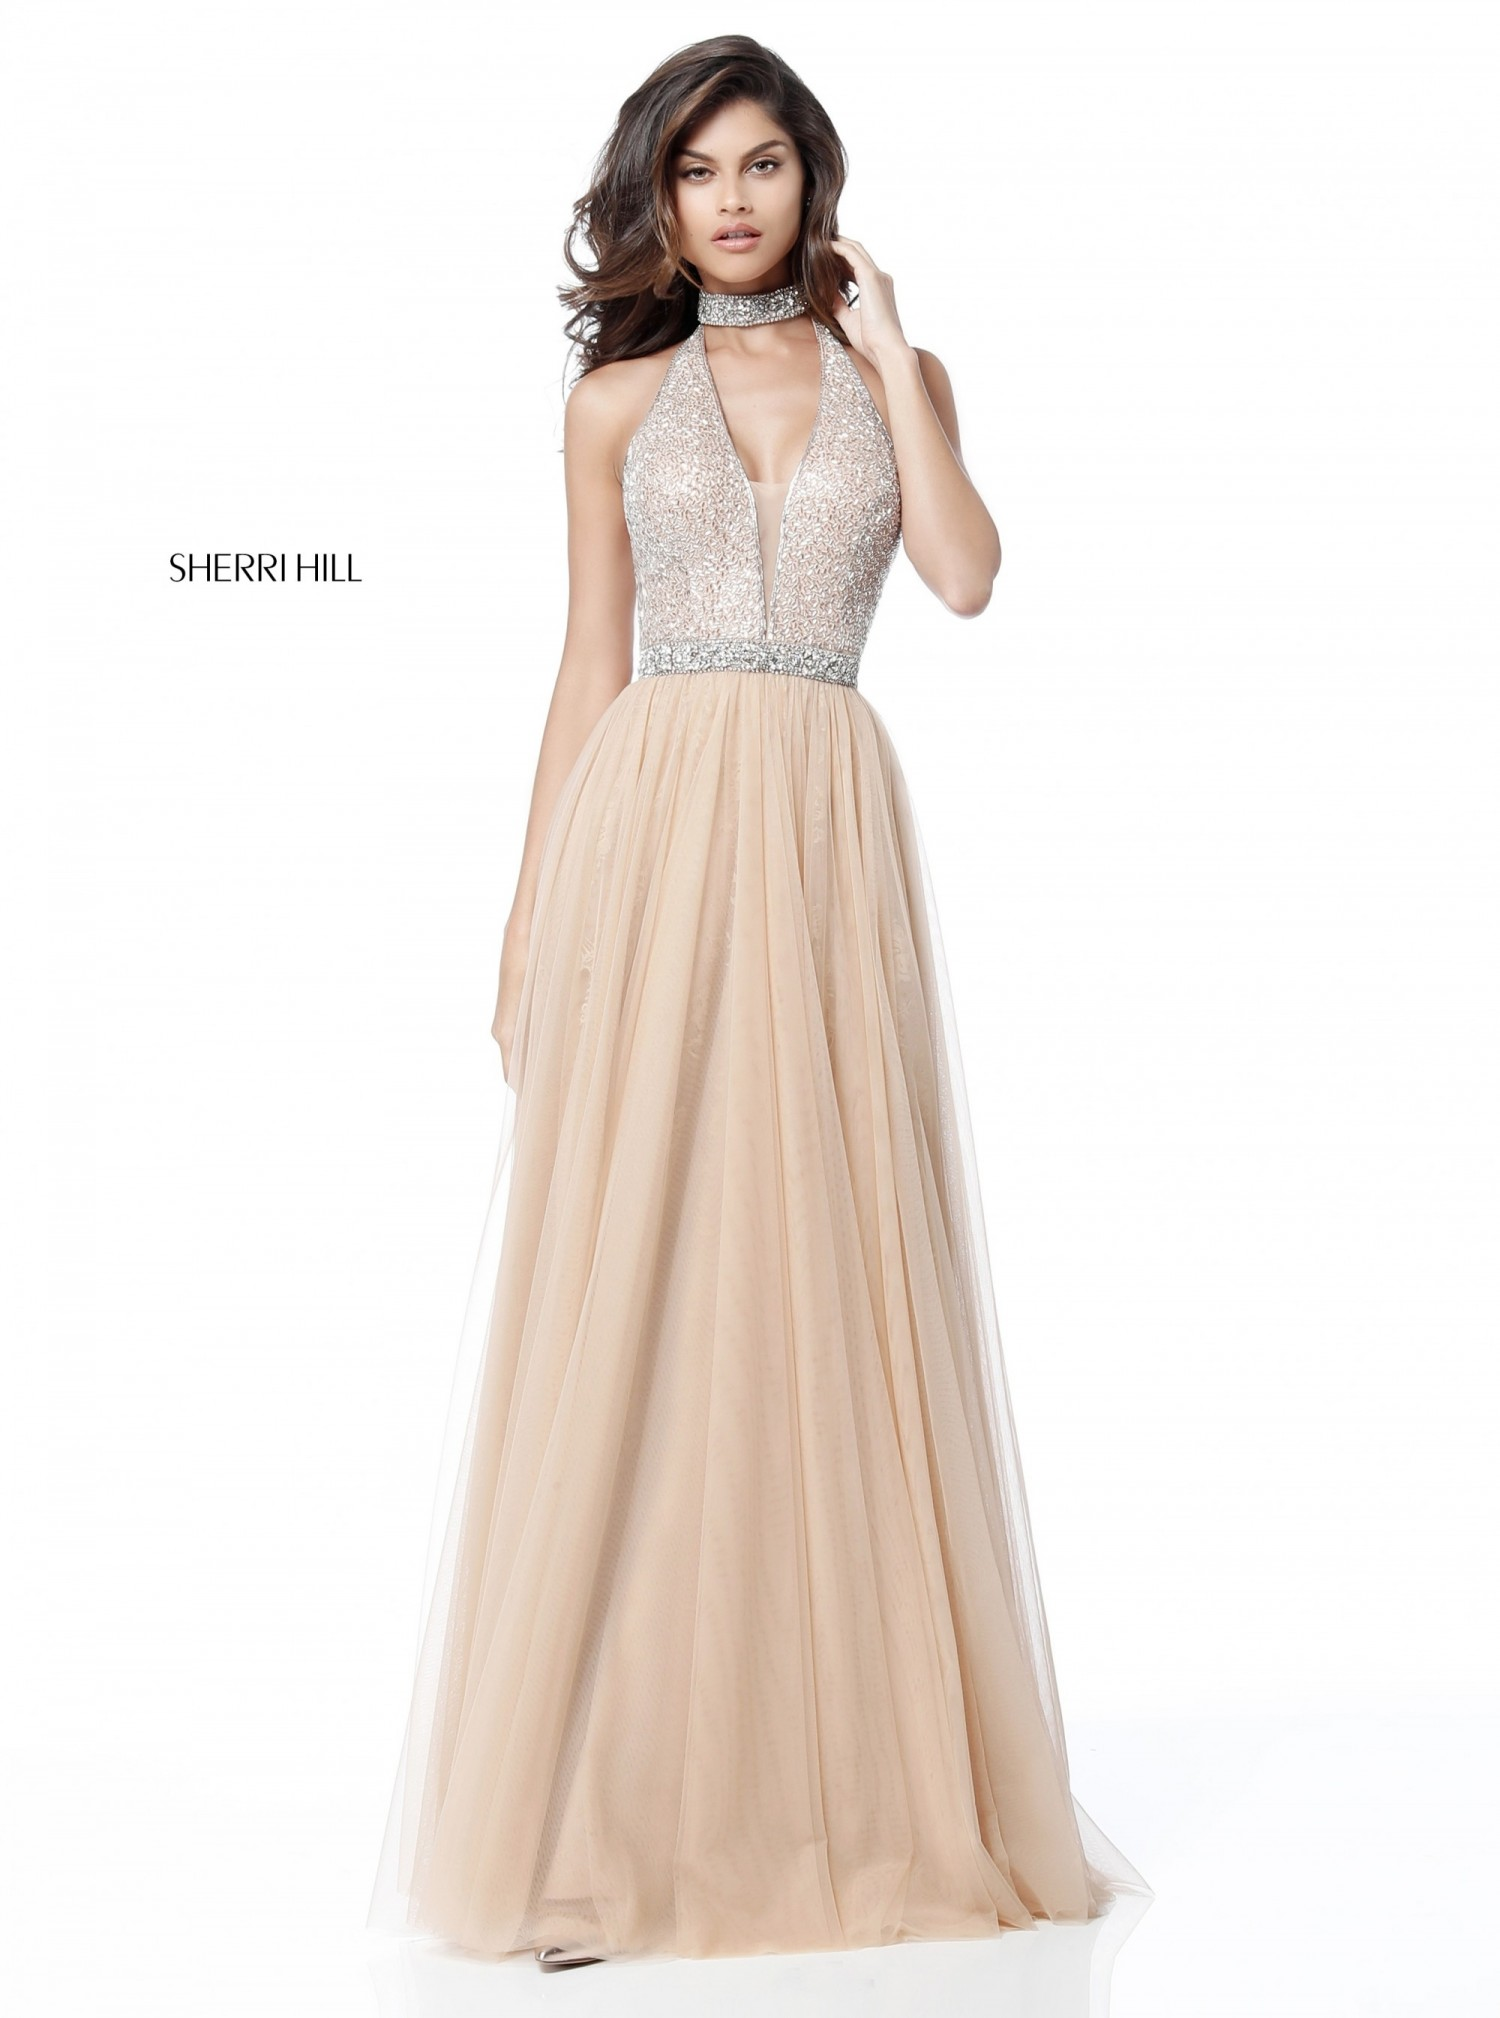 Sherri Hill 51637 Jeweled Choker Plunge Neck Halter Gown